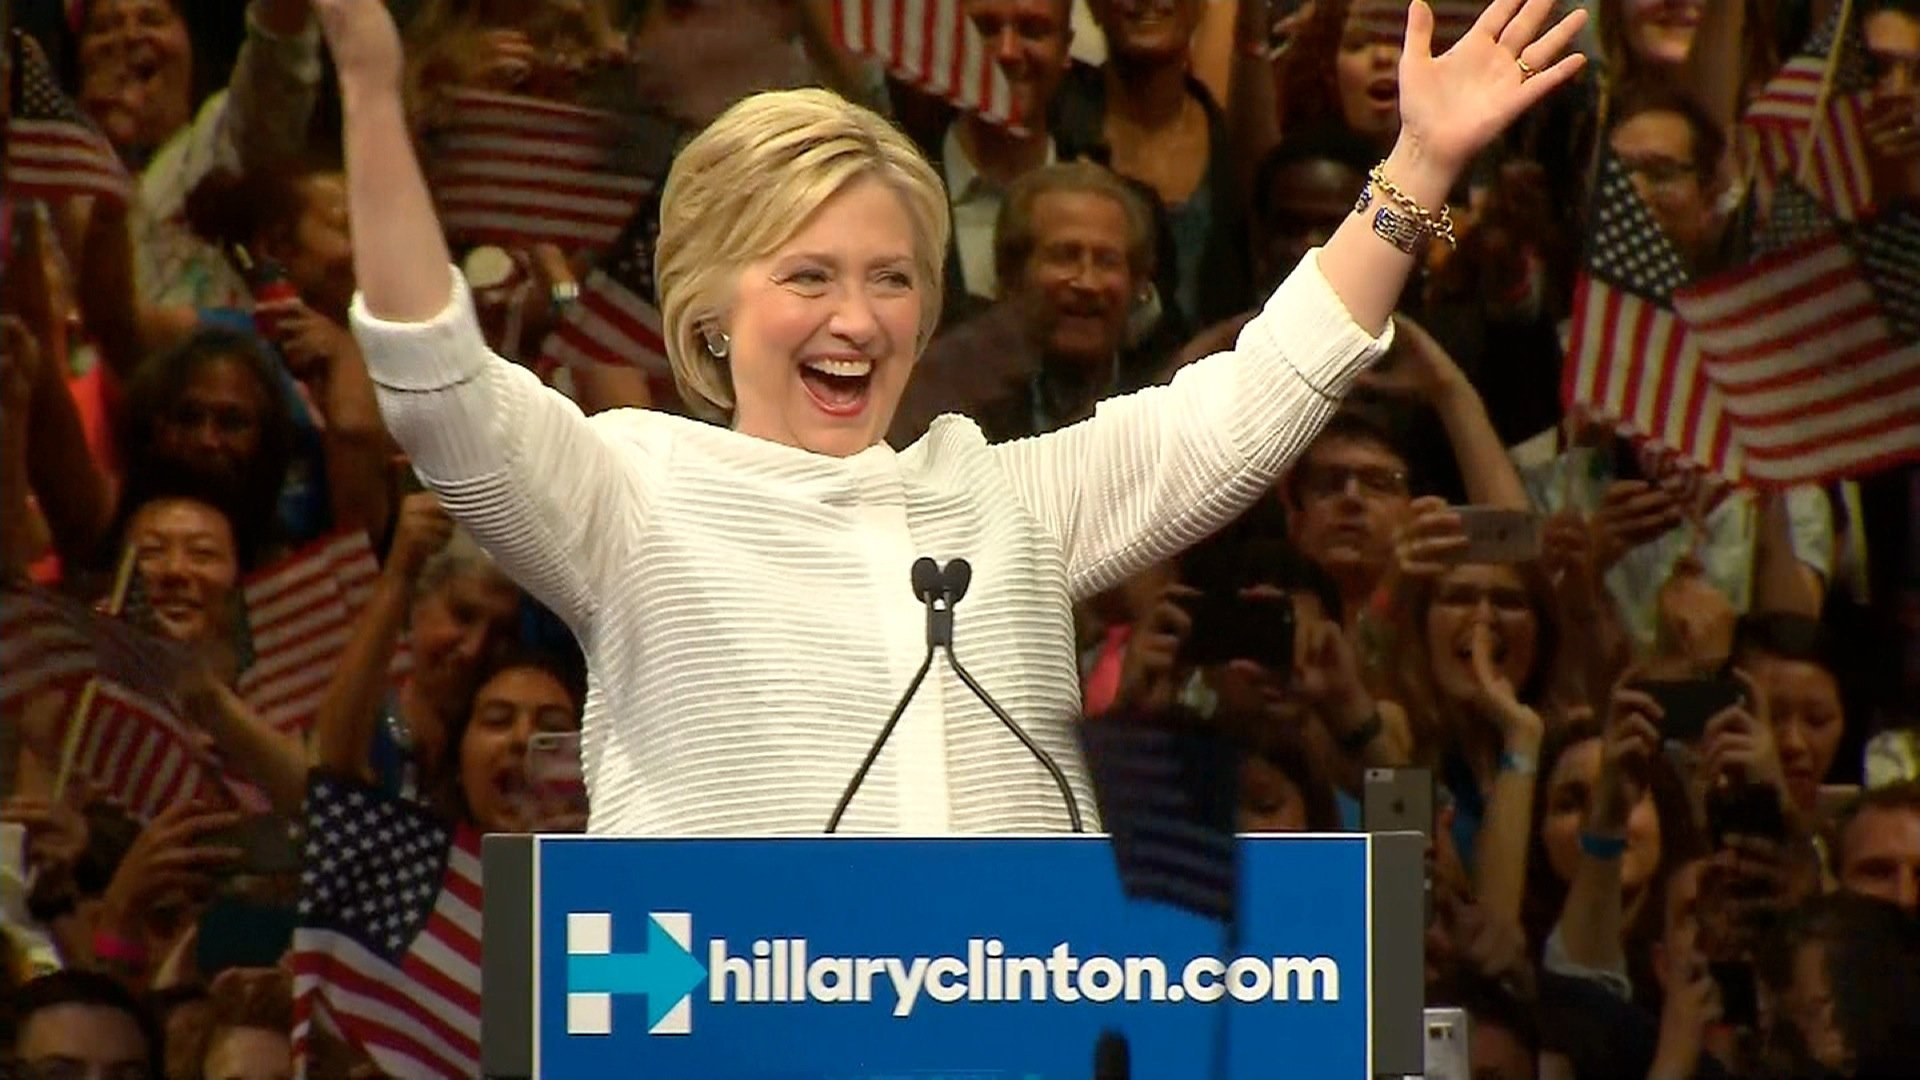 Hillary Clinton embraced her place in history Tuesday as the first woman to become the presidential nominee of a major political party. Credit: POOL